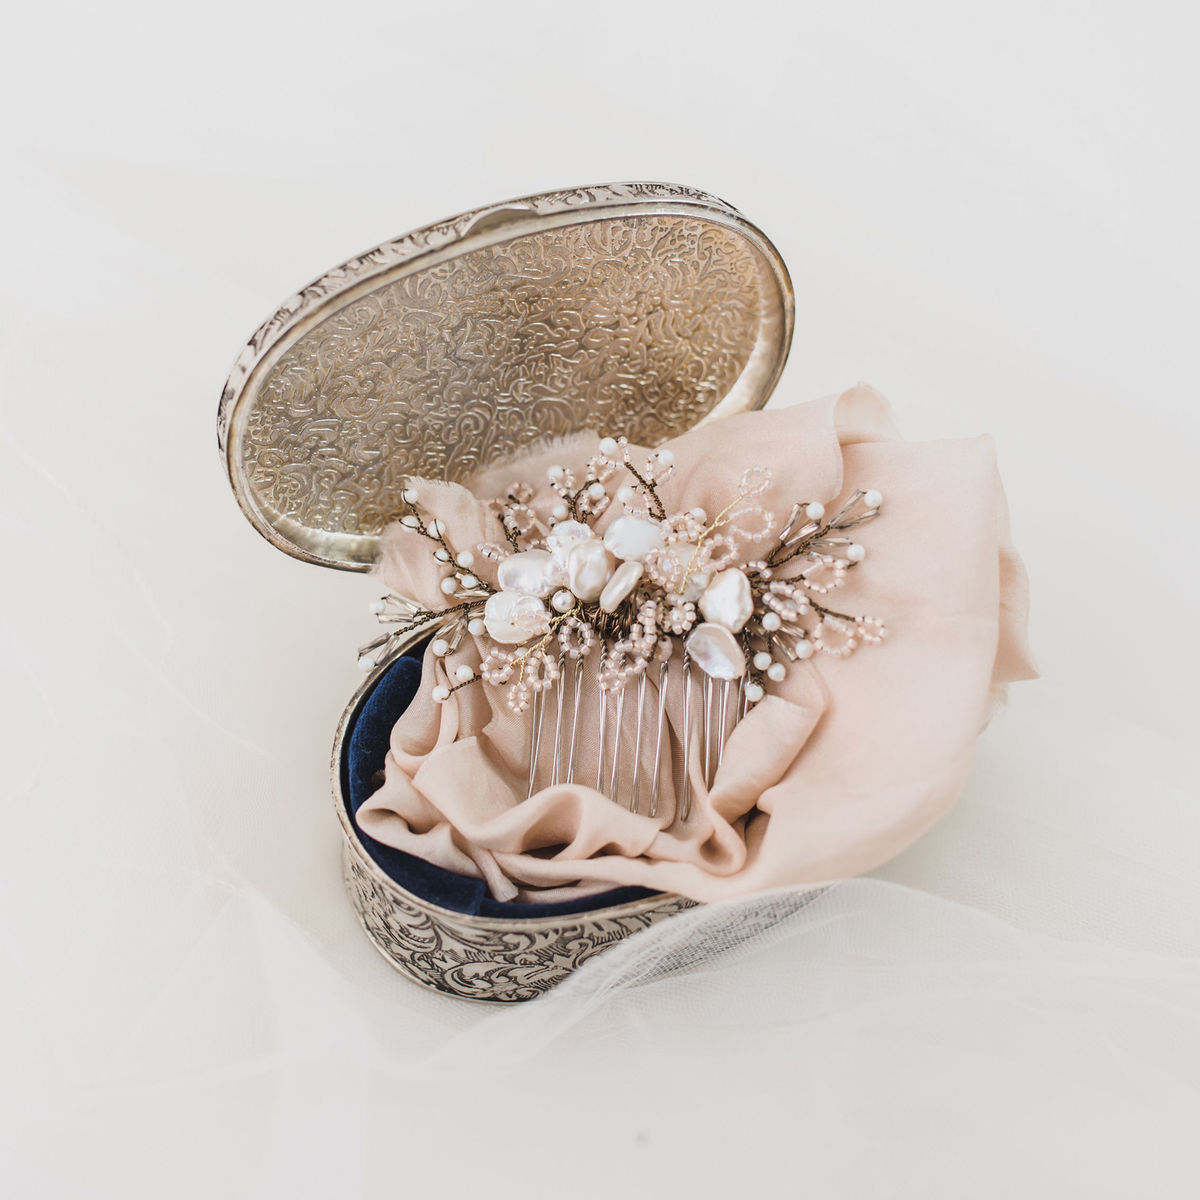 Megan Comb - product images  of